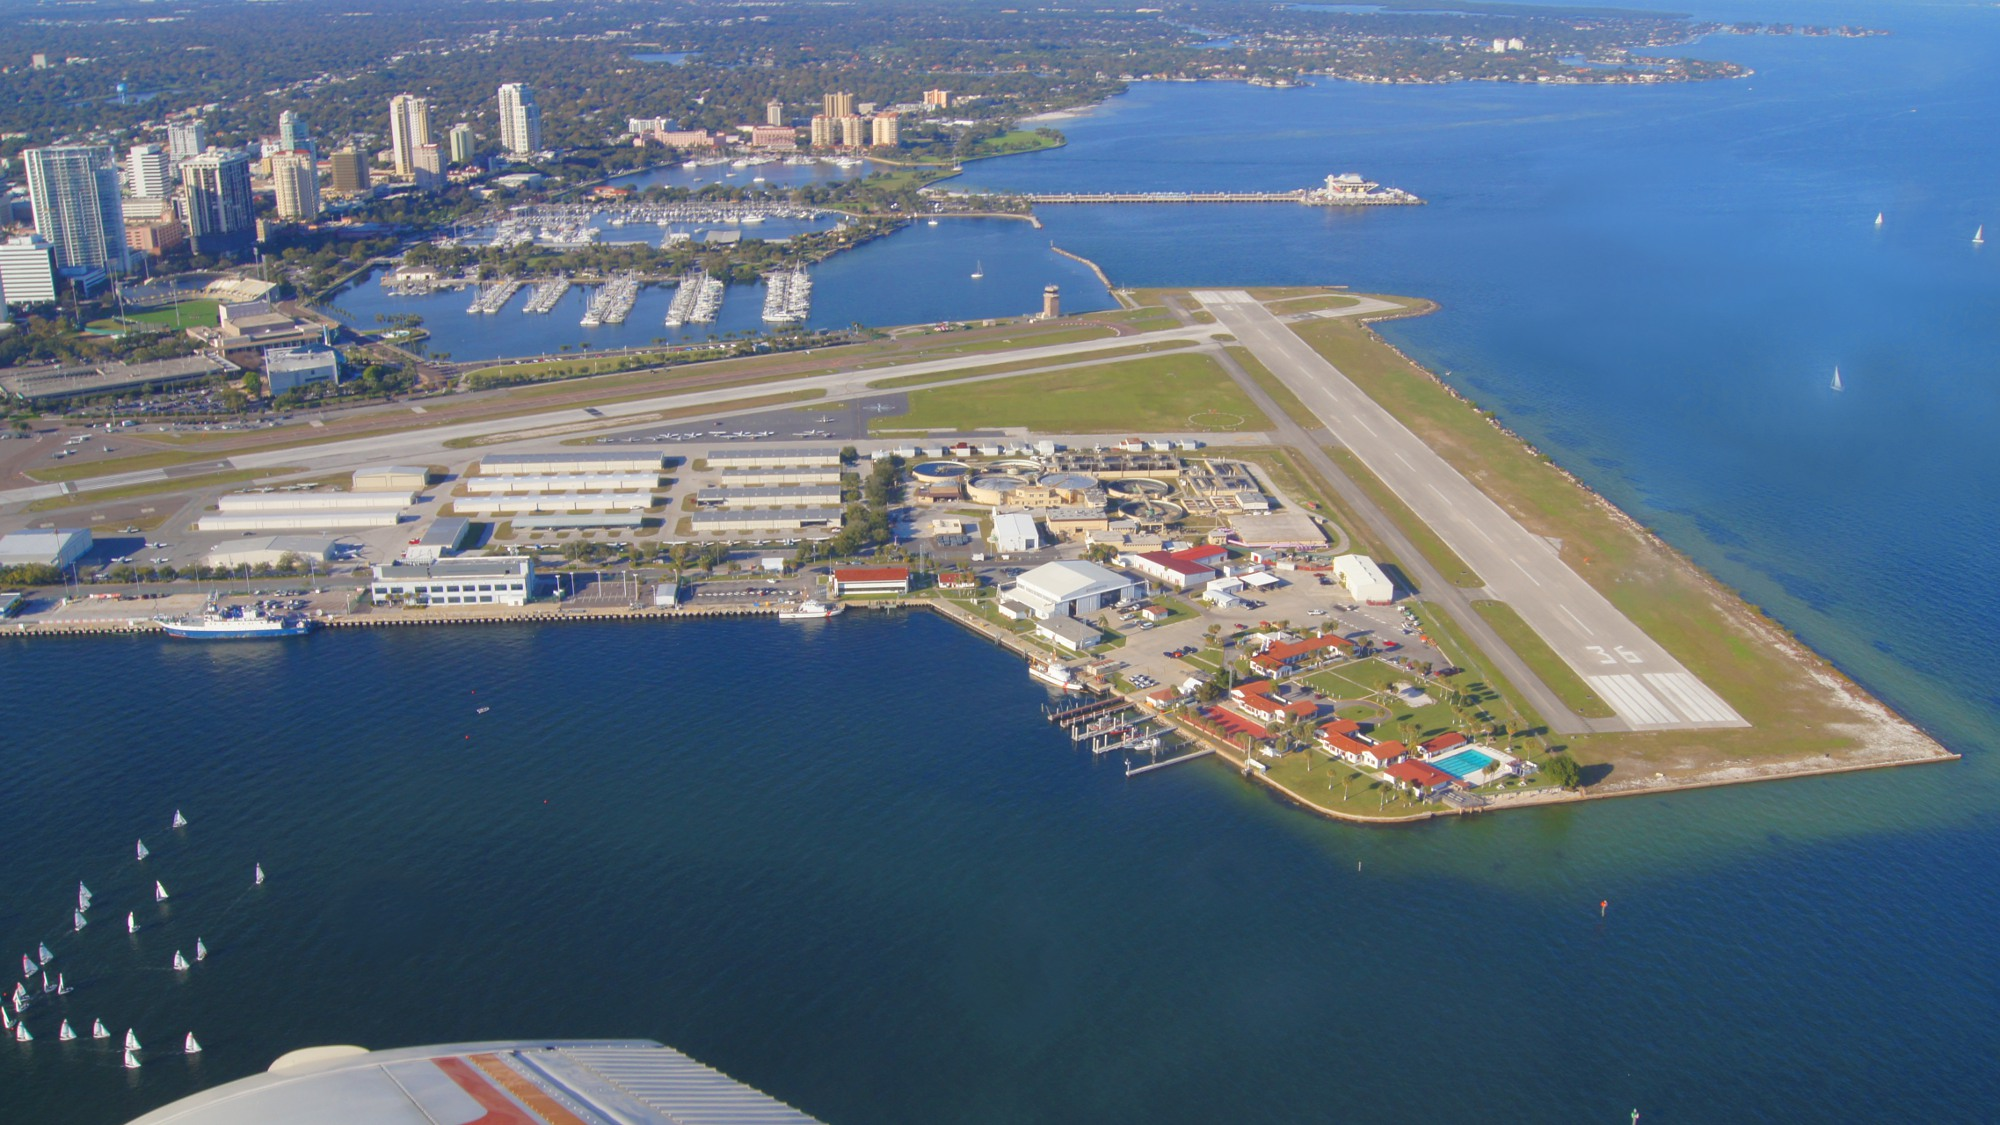 Aerial View Of Albert Whitted Airport